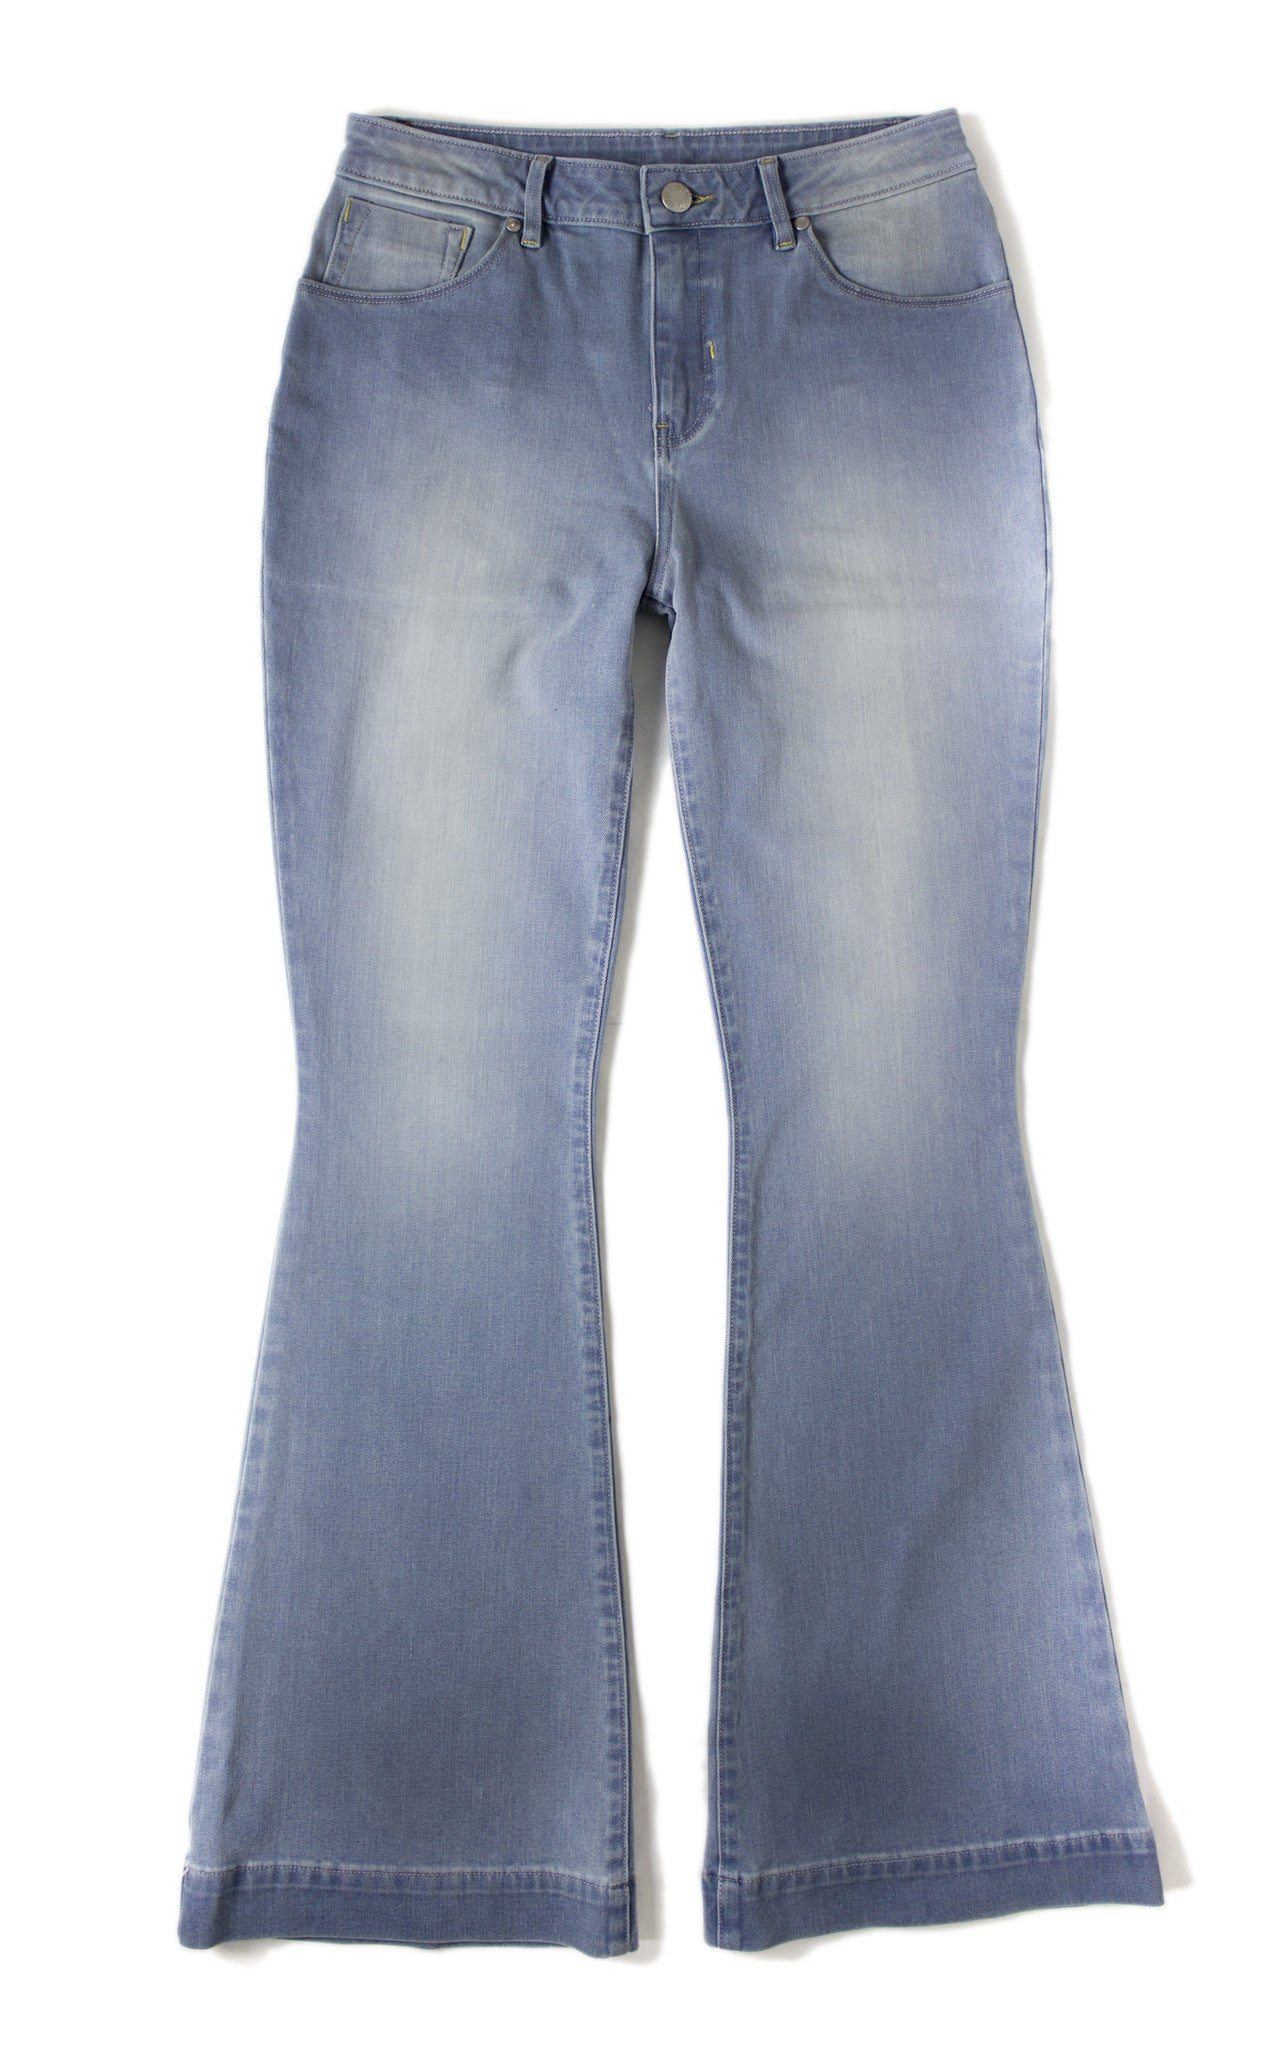 Skinny Flare - Mckenzie Light Med Blue